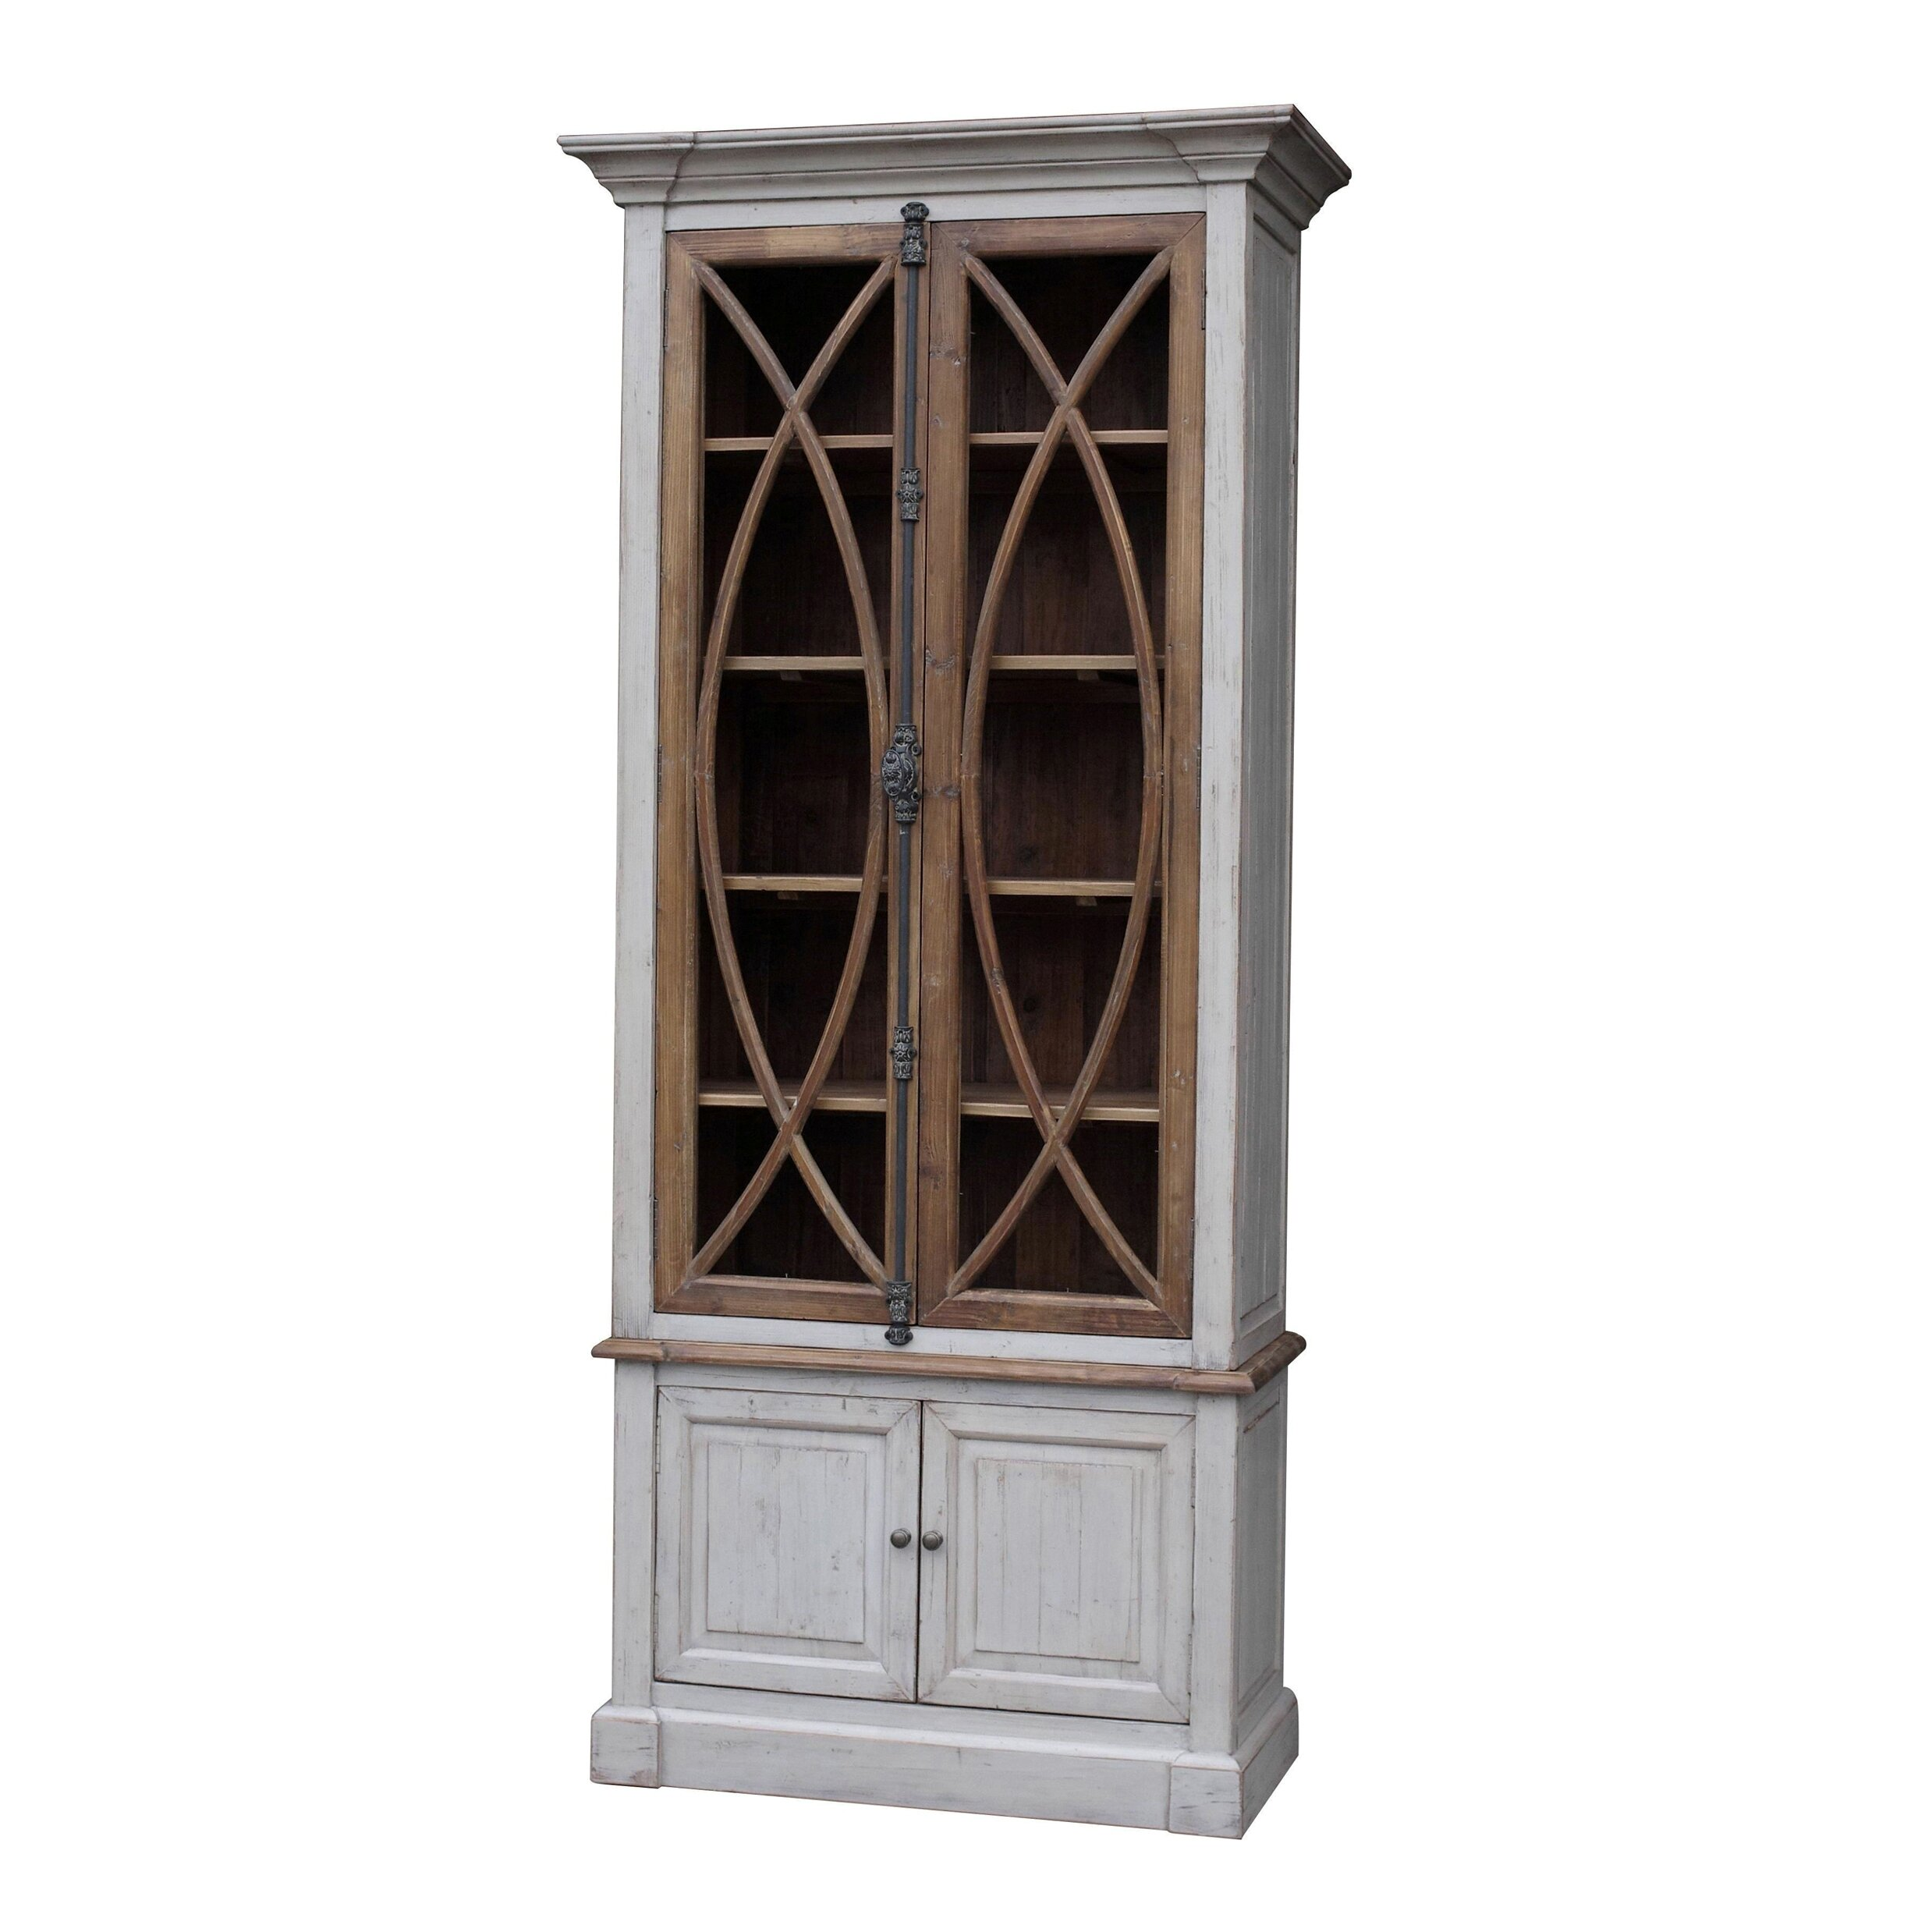 Superb img of White x White Garrity Vitrine China Cabinet & Reviews Wayfair with #785E4A color and 2477x2477 pixels